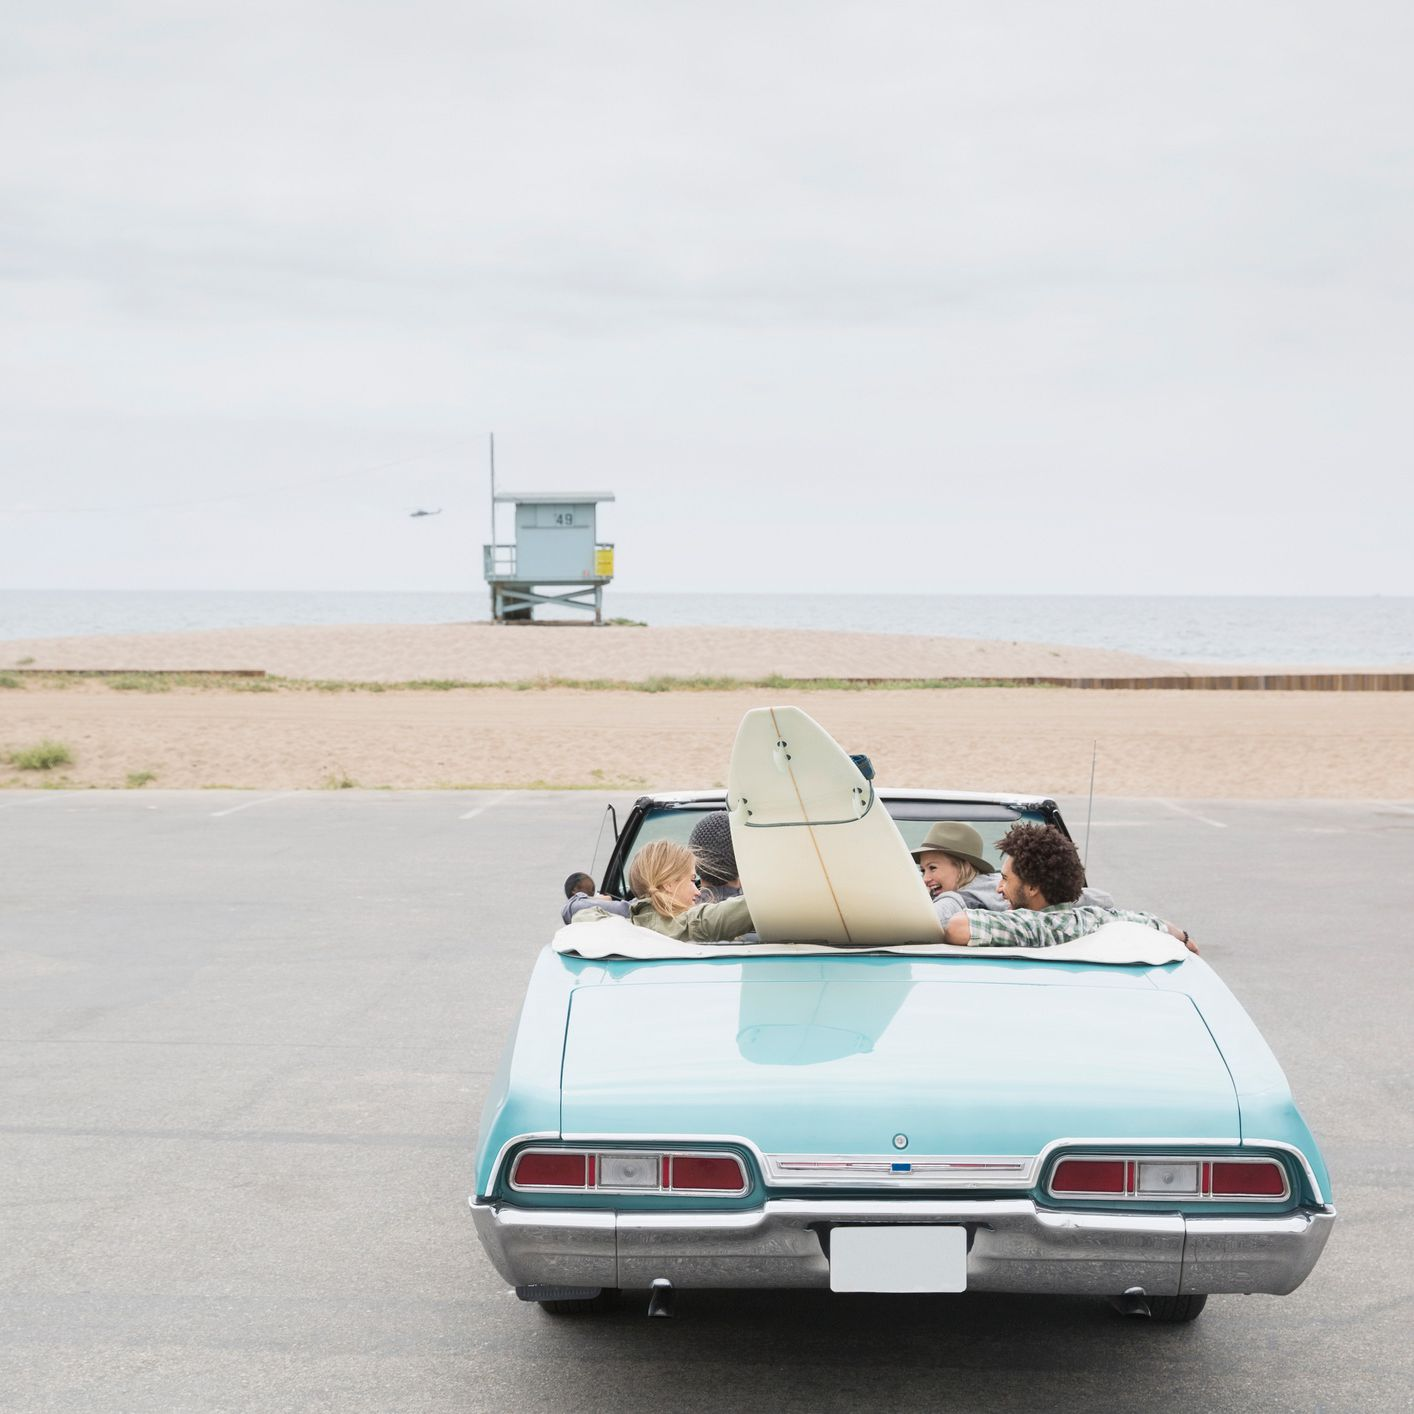 15 Los Angeles-Area Road Trips and Getaways